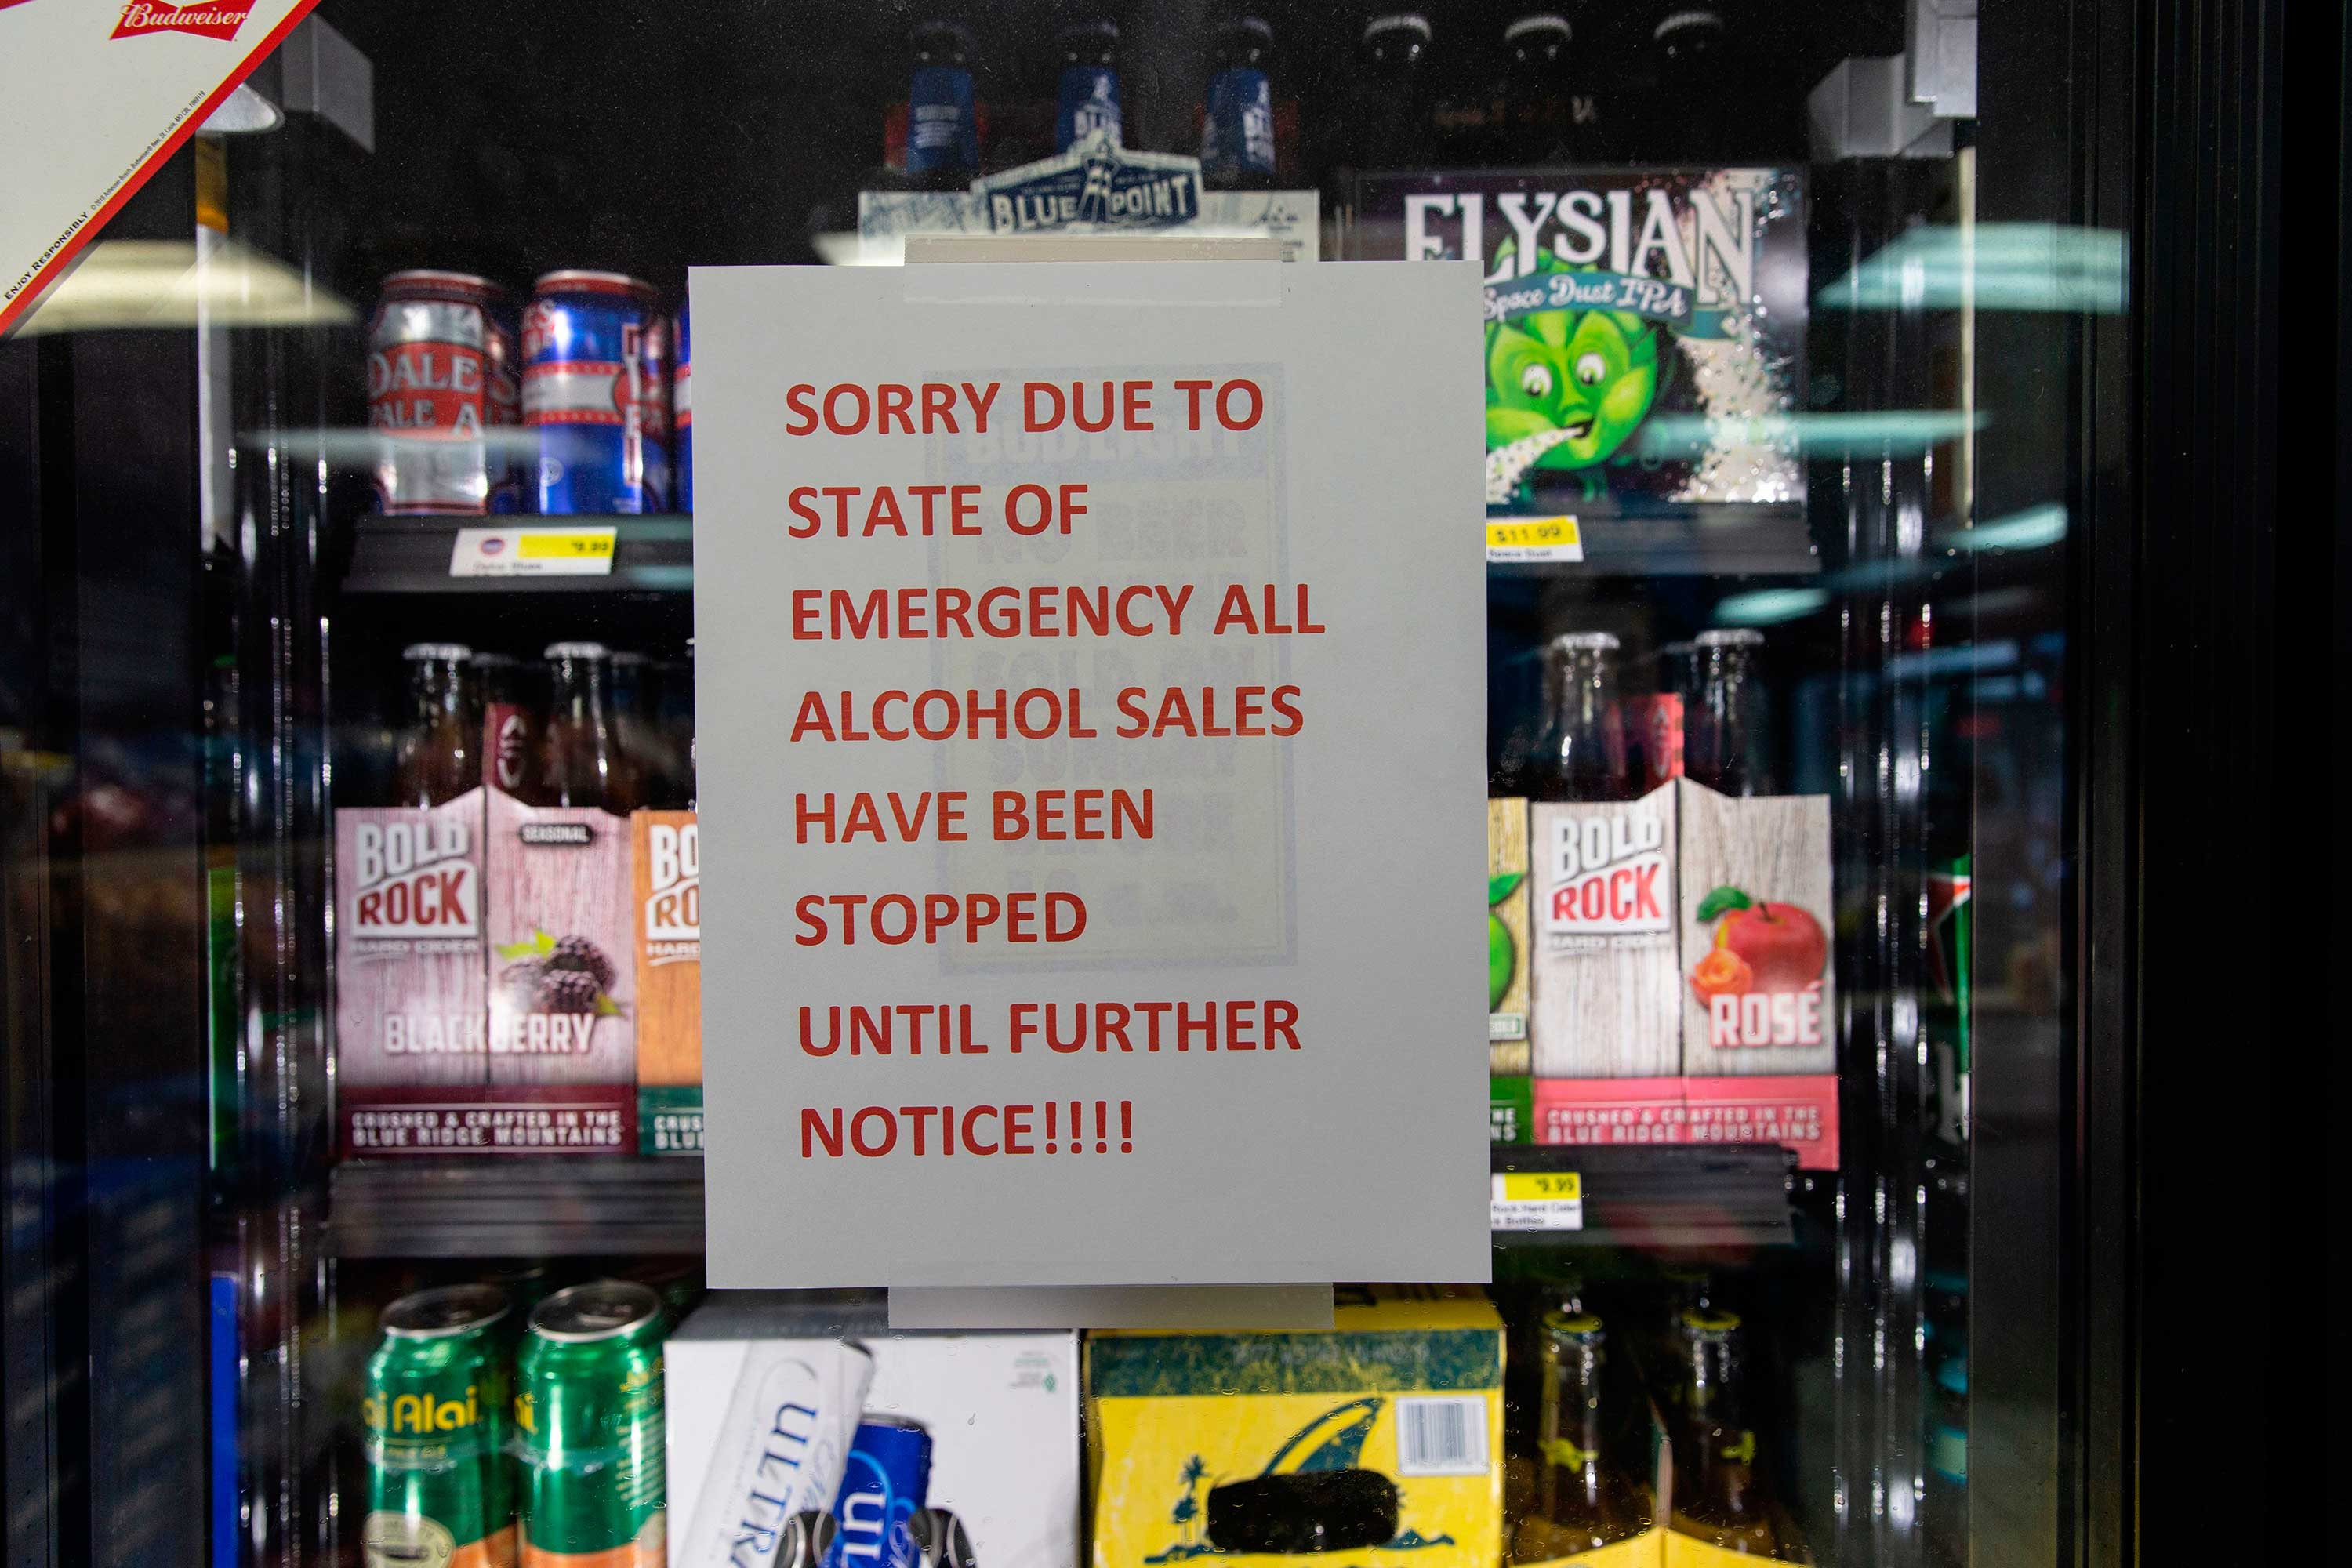 "<div class=""meta image-caption""><div class=""origin-logo origin-image none""><span>none</span></div><span class=""caption-text"">A sign warning customers that alcohol sales are suspended due to a 'state of emergency' at an Exxon station in Harbinger, North Carolina on September 11, 2018. (ALEX EDELMAN/AFP/Getty Images)</span></div>"